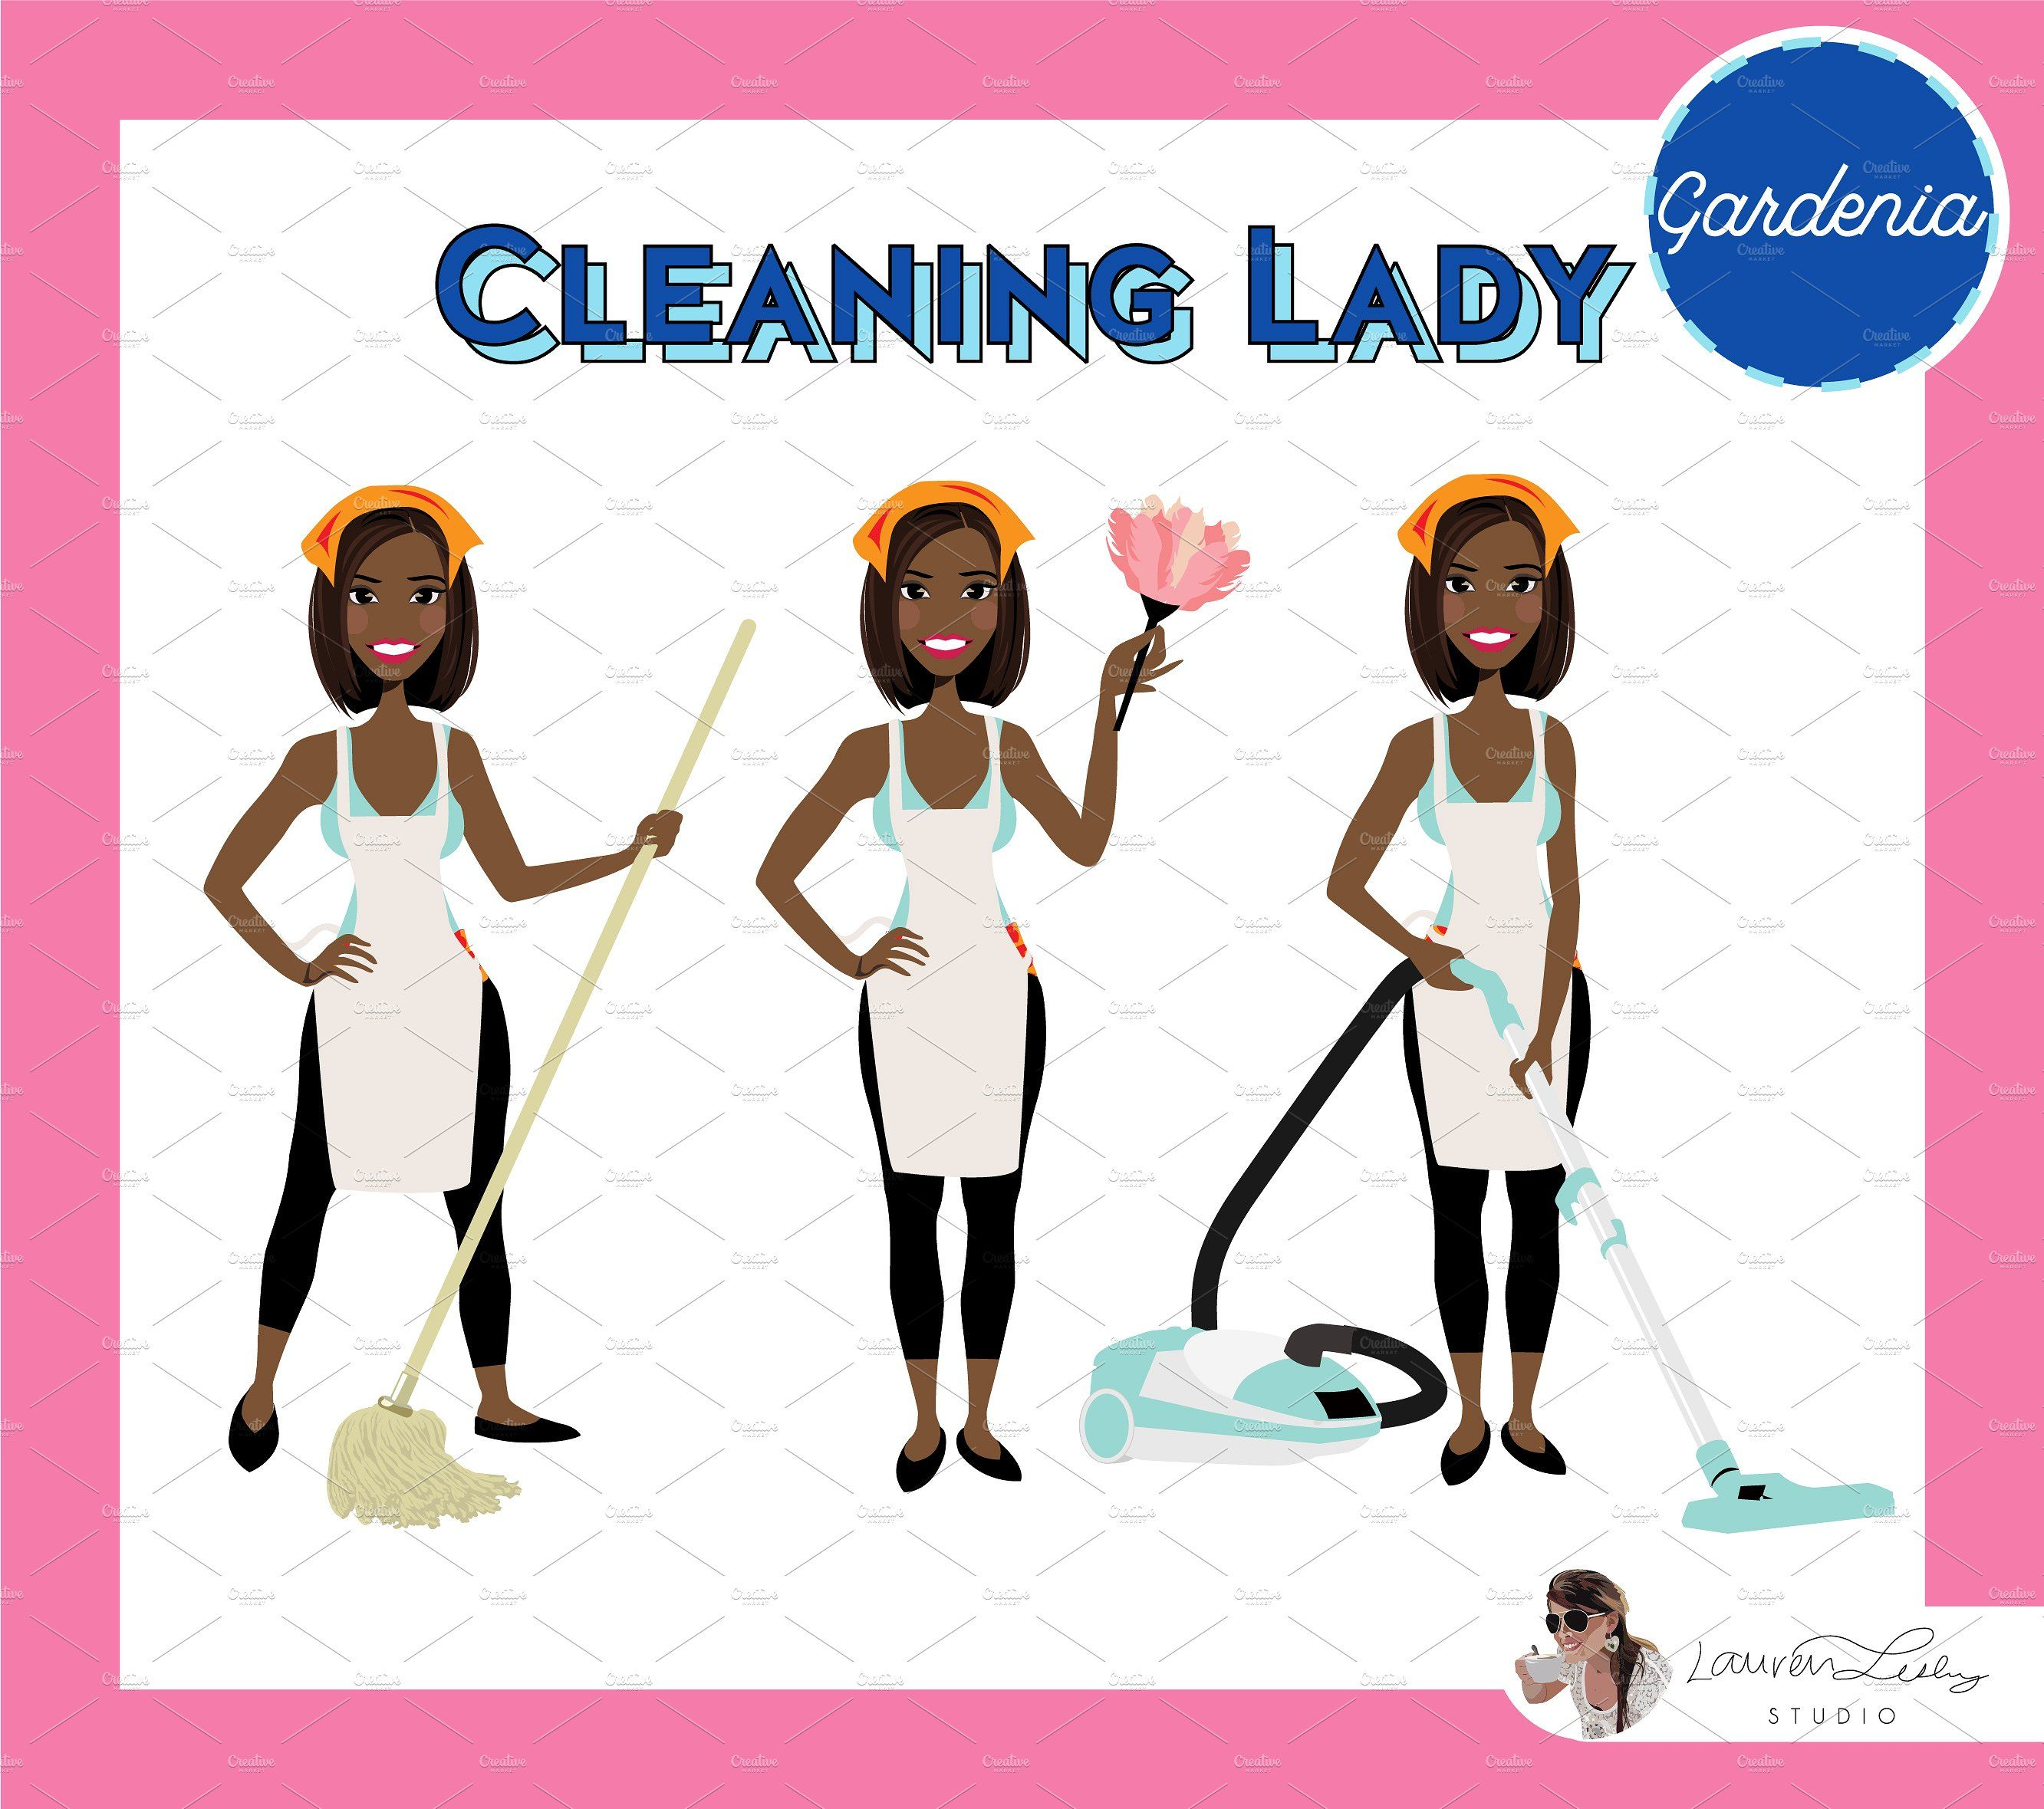 Cleaning Lady Maid Cleaner Vectors Cleaning Lady Lady Web Banner